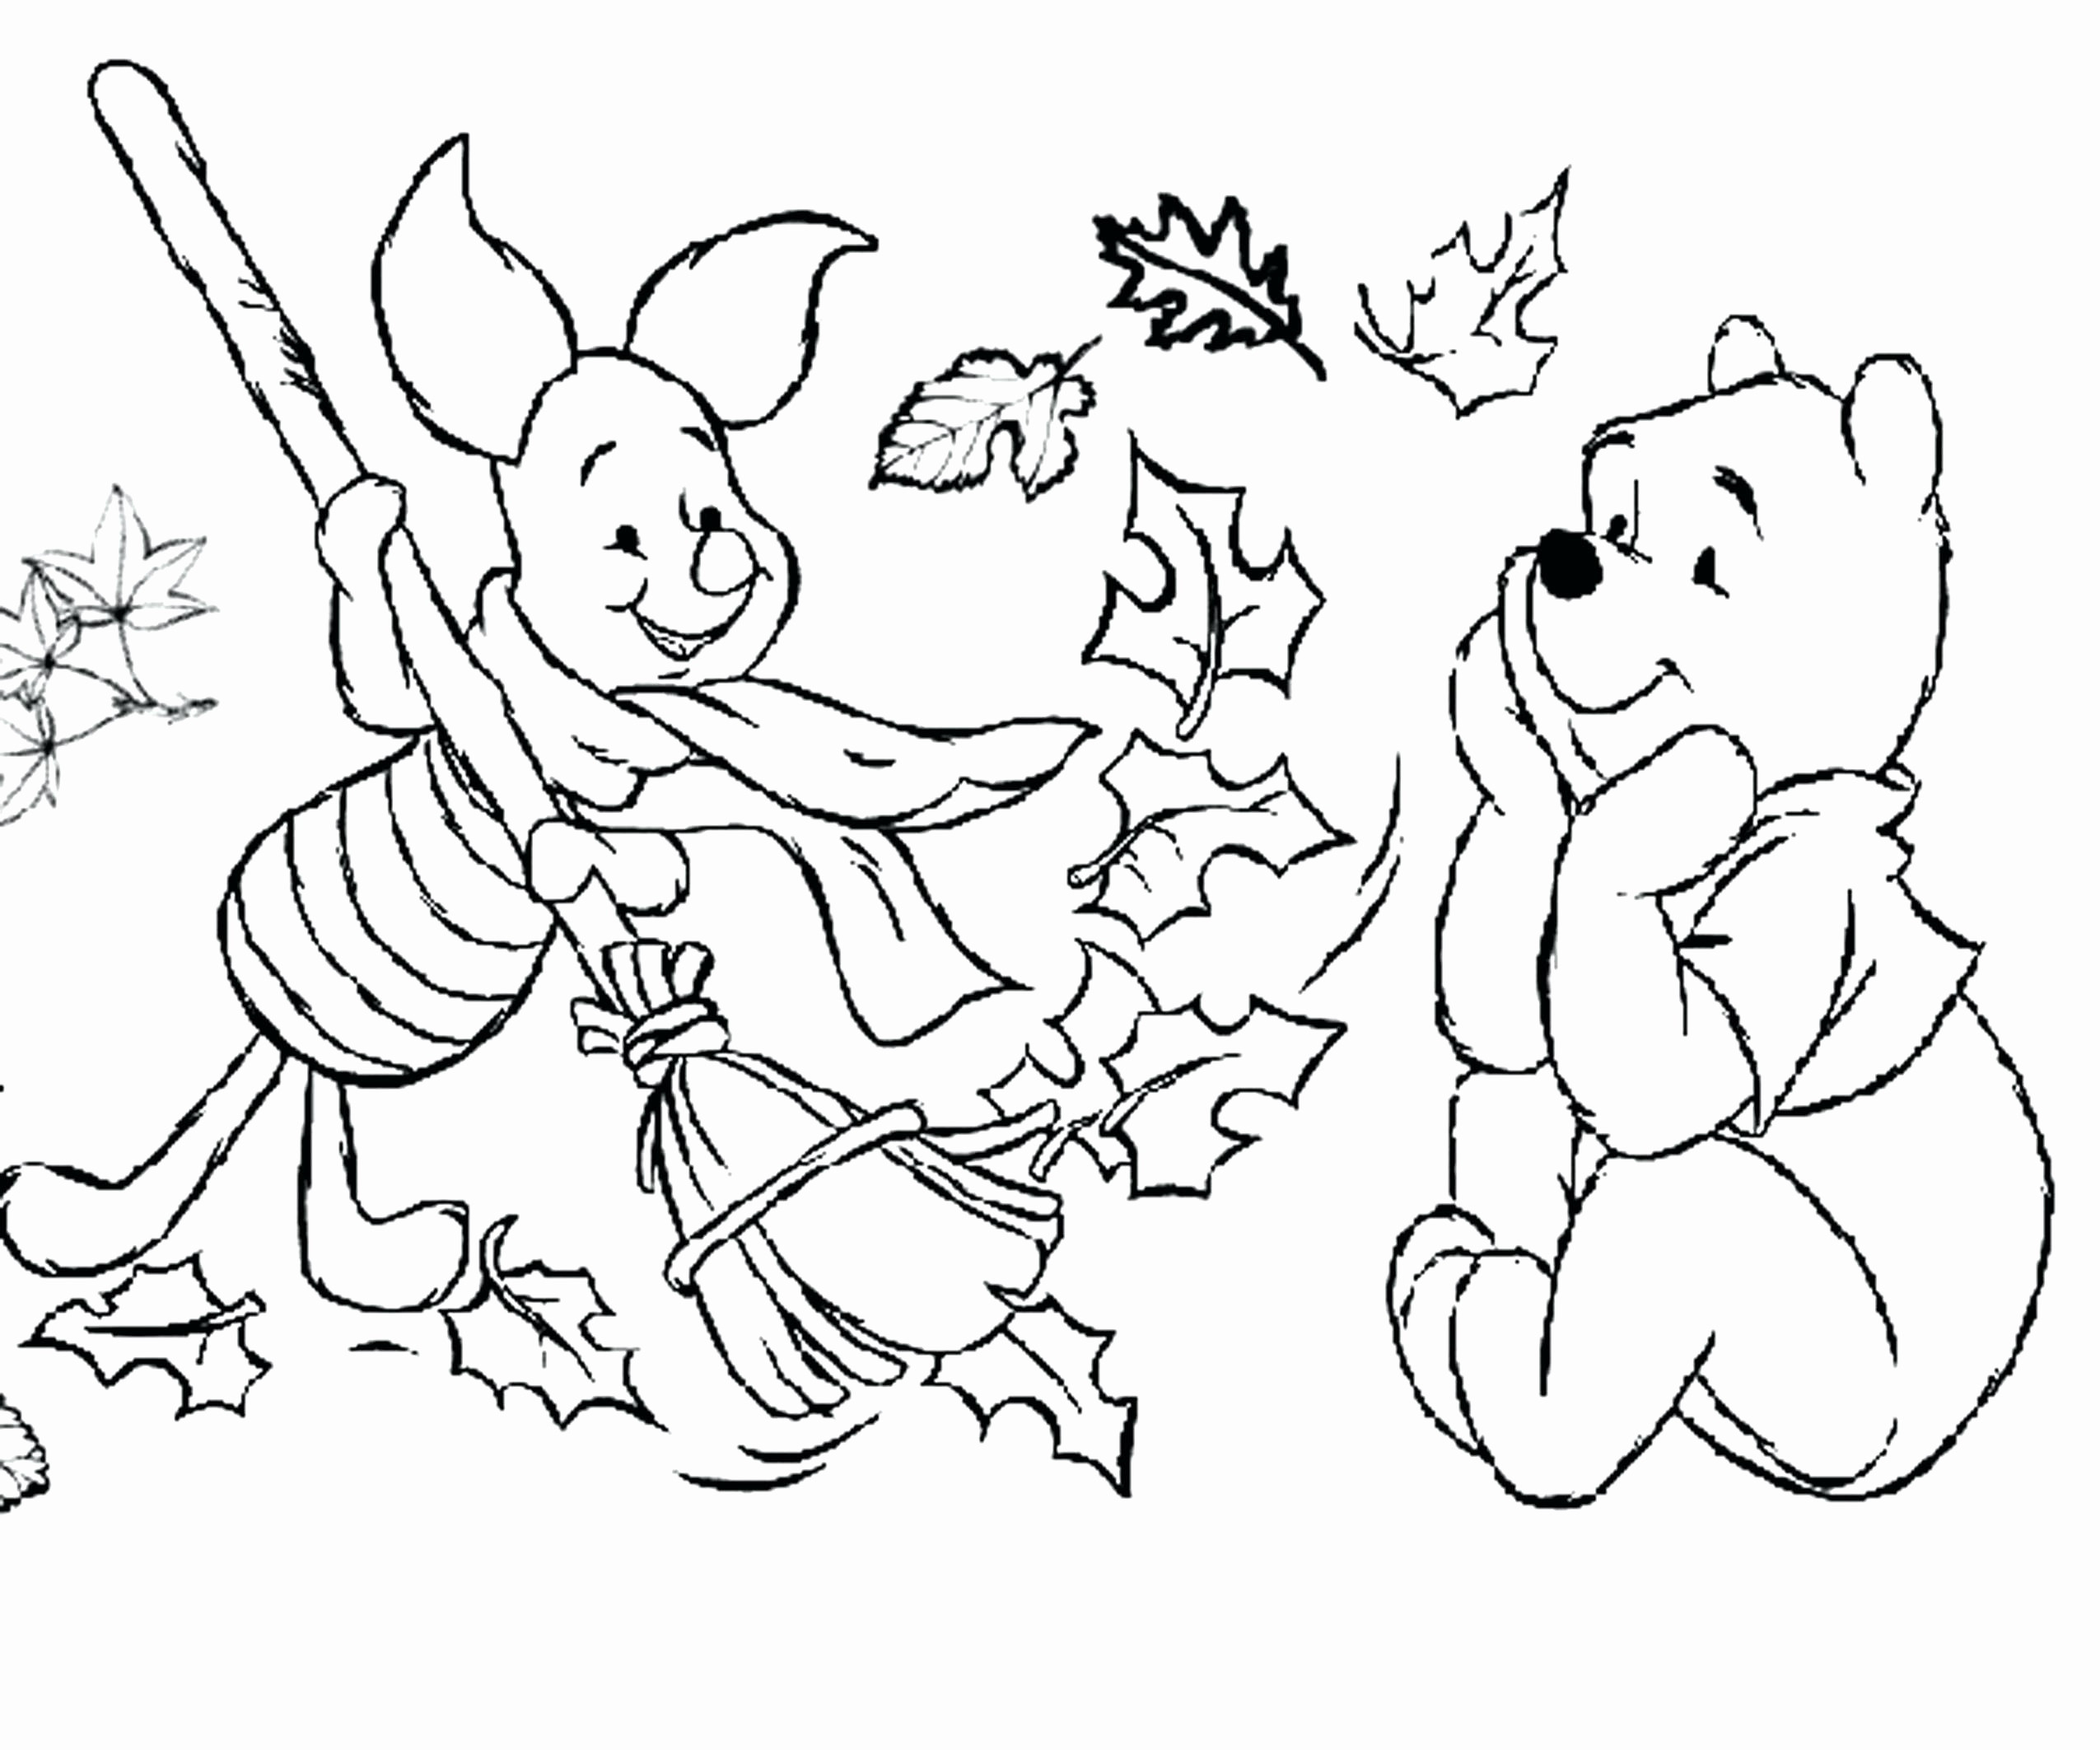 kids coloring pages online Collection-Coloring Pages line for Kids Batman Coloring Pages Games New Fall Coloring Pages 0d Page for 18-j